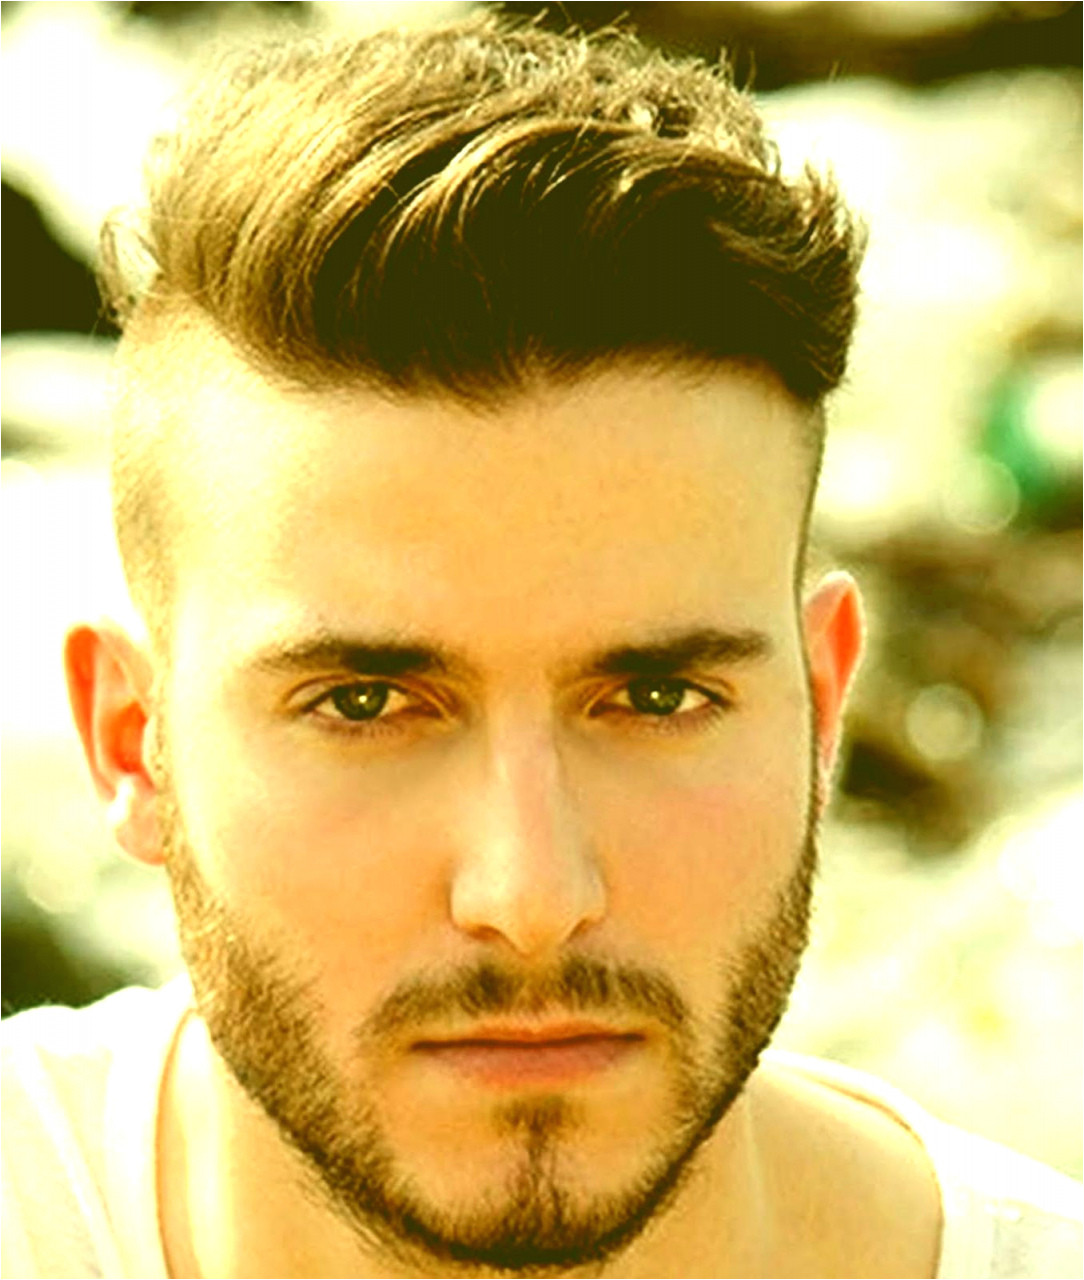 50 Hairstyles for Men Pic Lovely Captivating Short Hairstyles for Men New Hairstyles Men 0d Bright